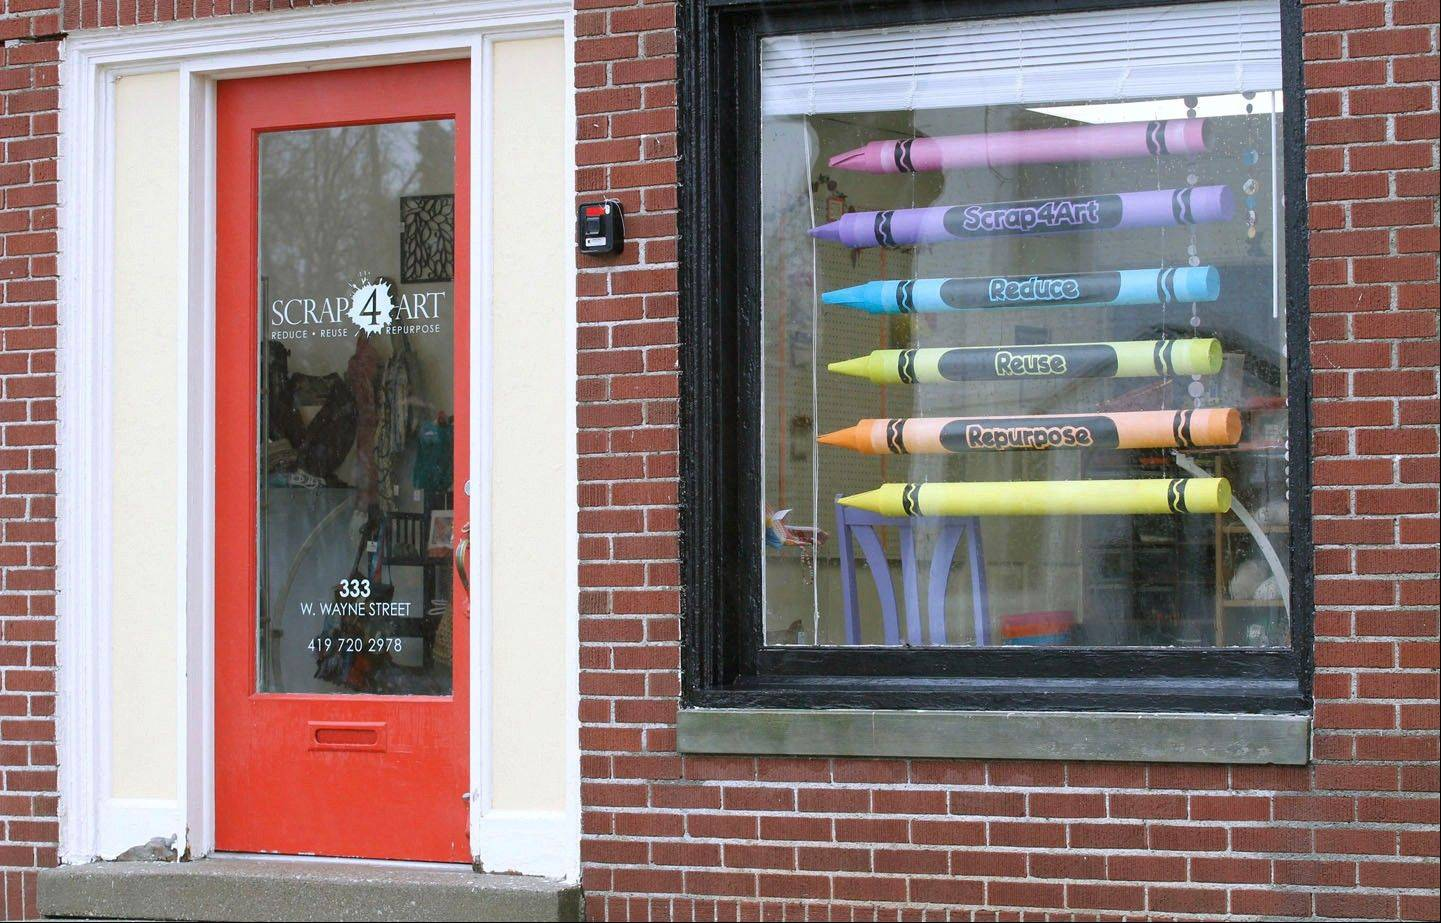 Crayon curtains are made of cardboard tubes and are for sale at Scrap 4 Art in Maumee, Ohio.